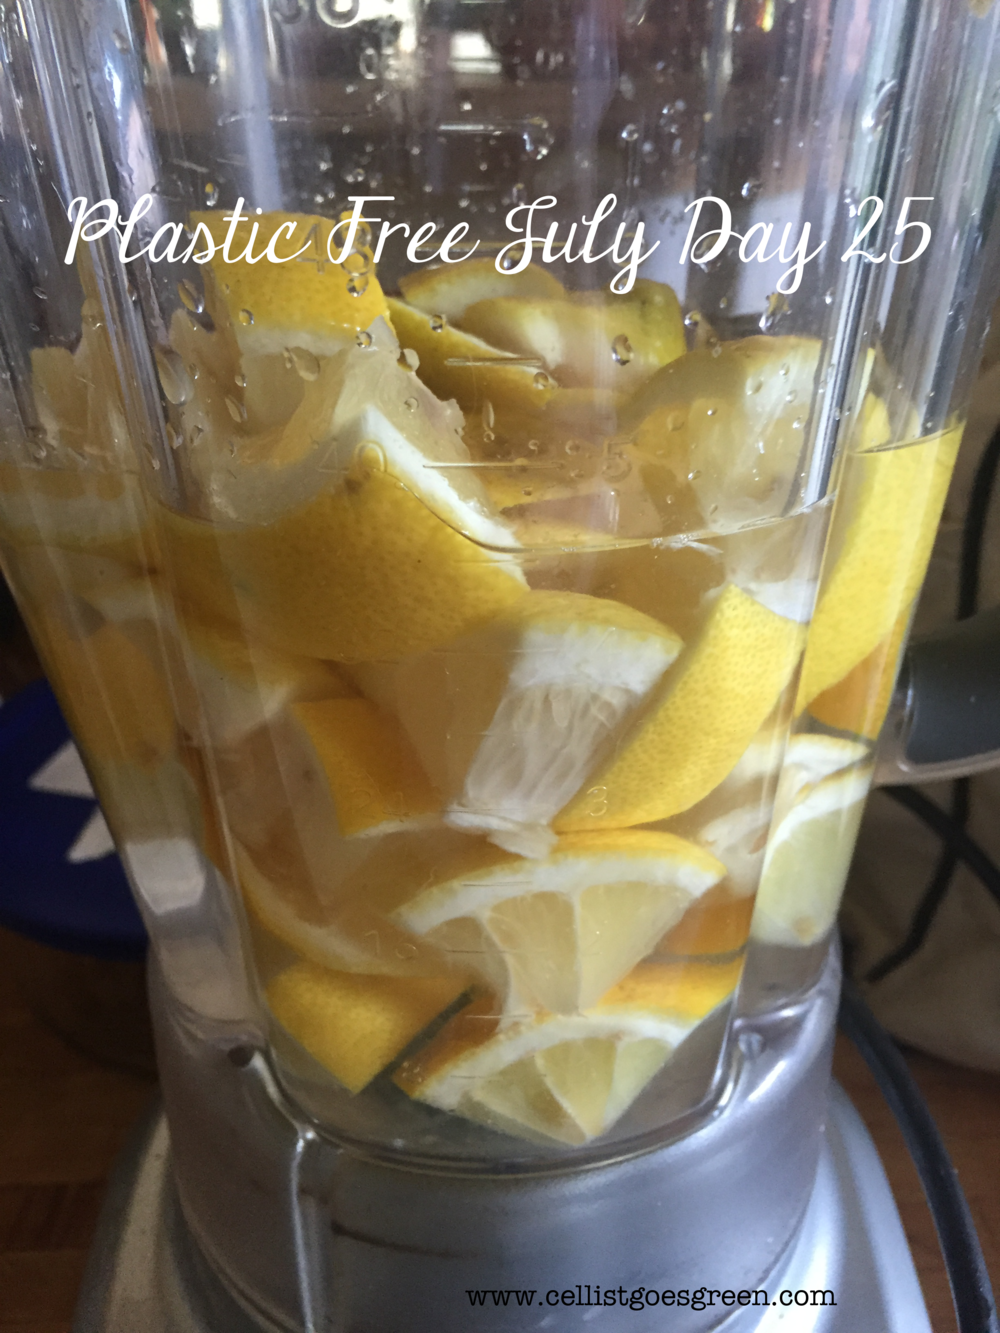 Plastic Free July Day 25: Homemade dishwasher detergent without plastic | Cellist Goes Green